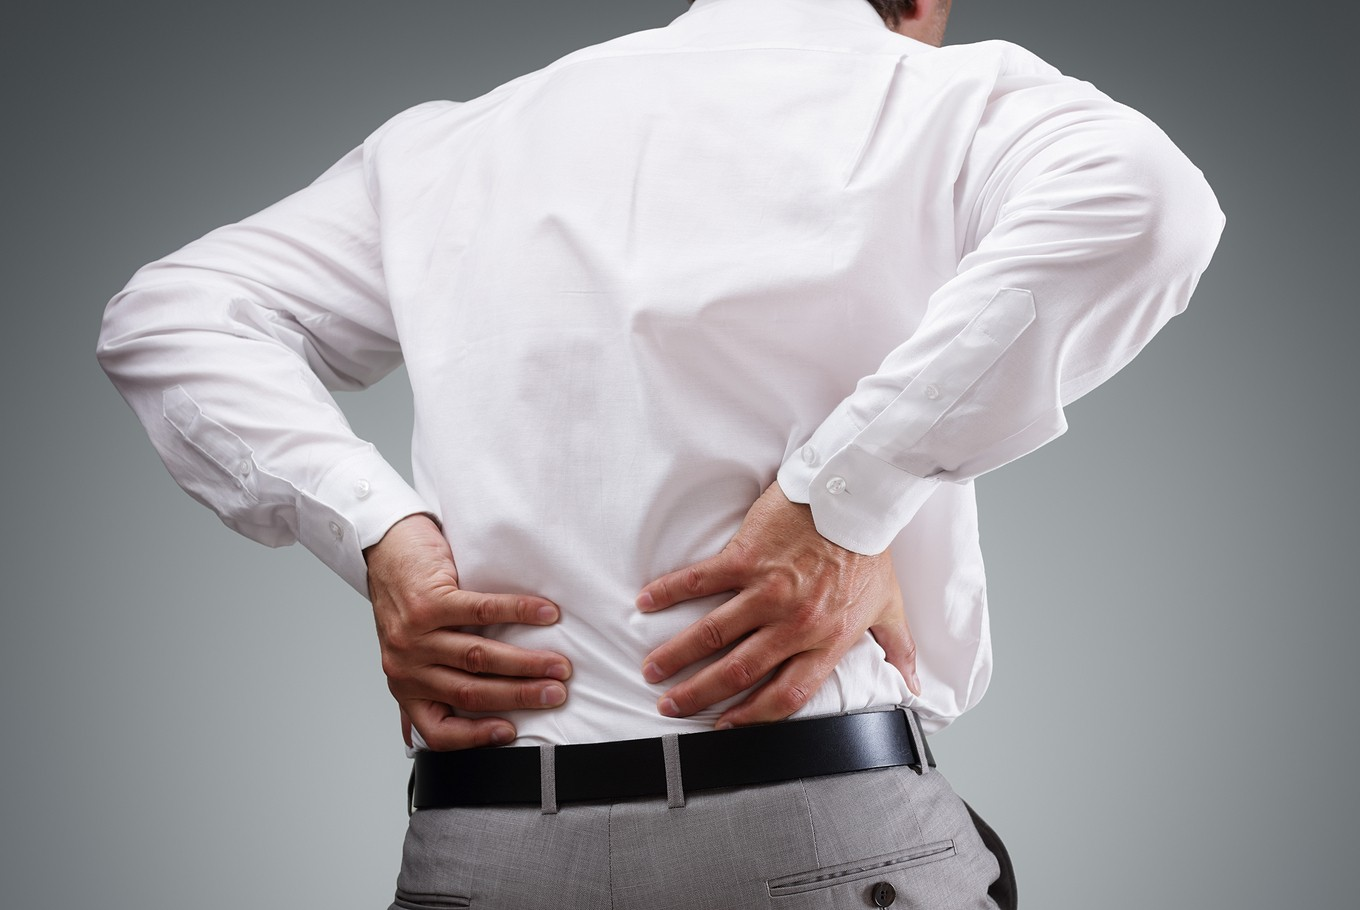 Ways to relieve back pain without going to the doctor